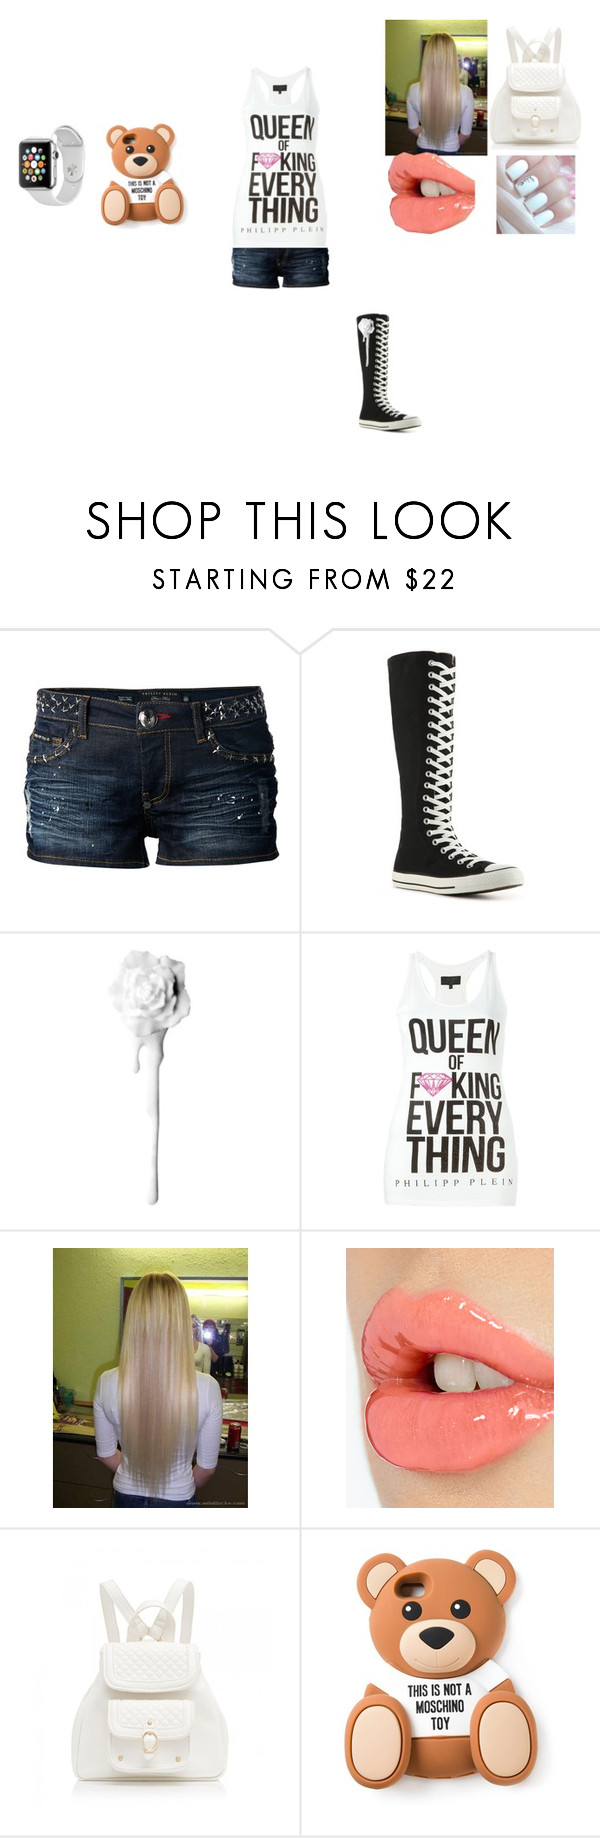 """Queen Of F*cking Everything #2"" by theultrafighter ❤ liked on Polyvore featuring mode, Philipp Plein, Converse, Samsung, Charlotte Tilbury, Forever New, Moschino, white, queen et PhilippPlein"